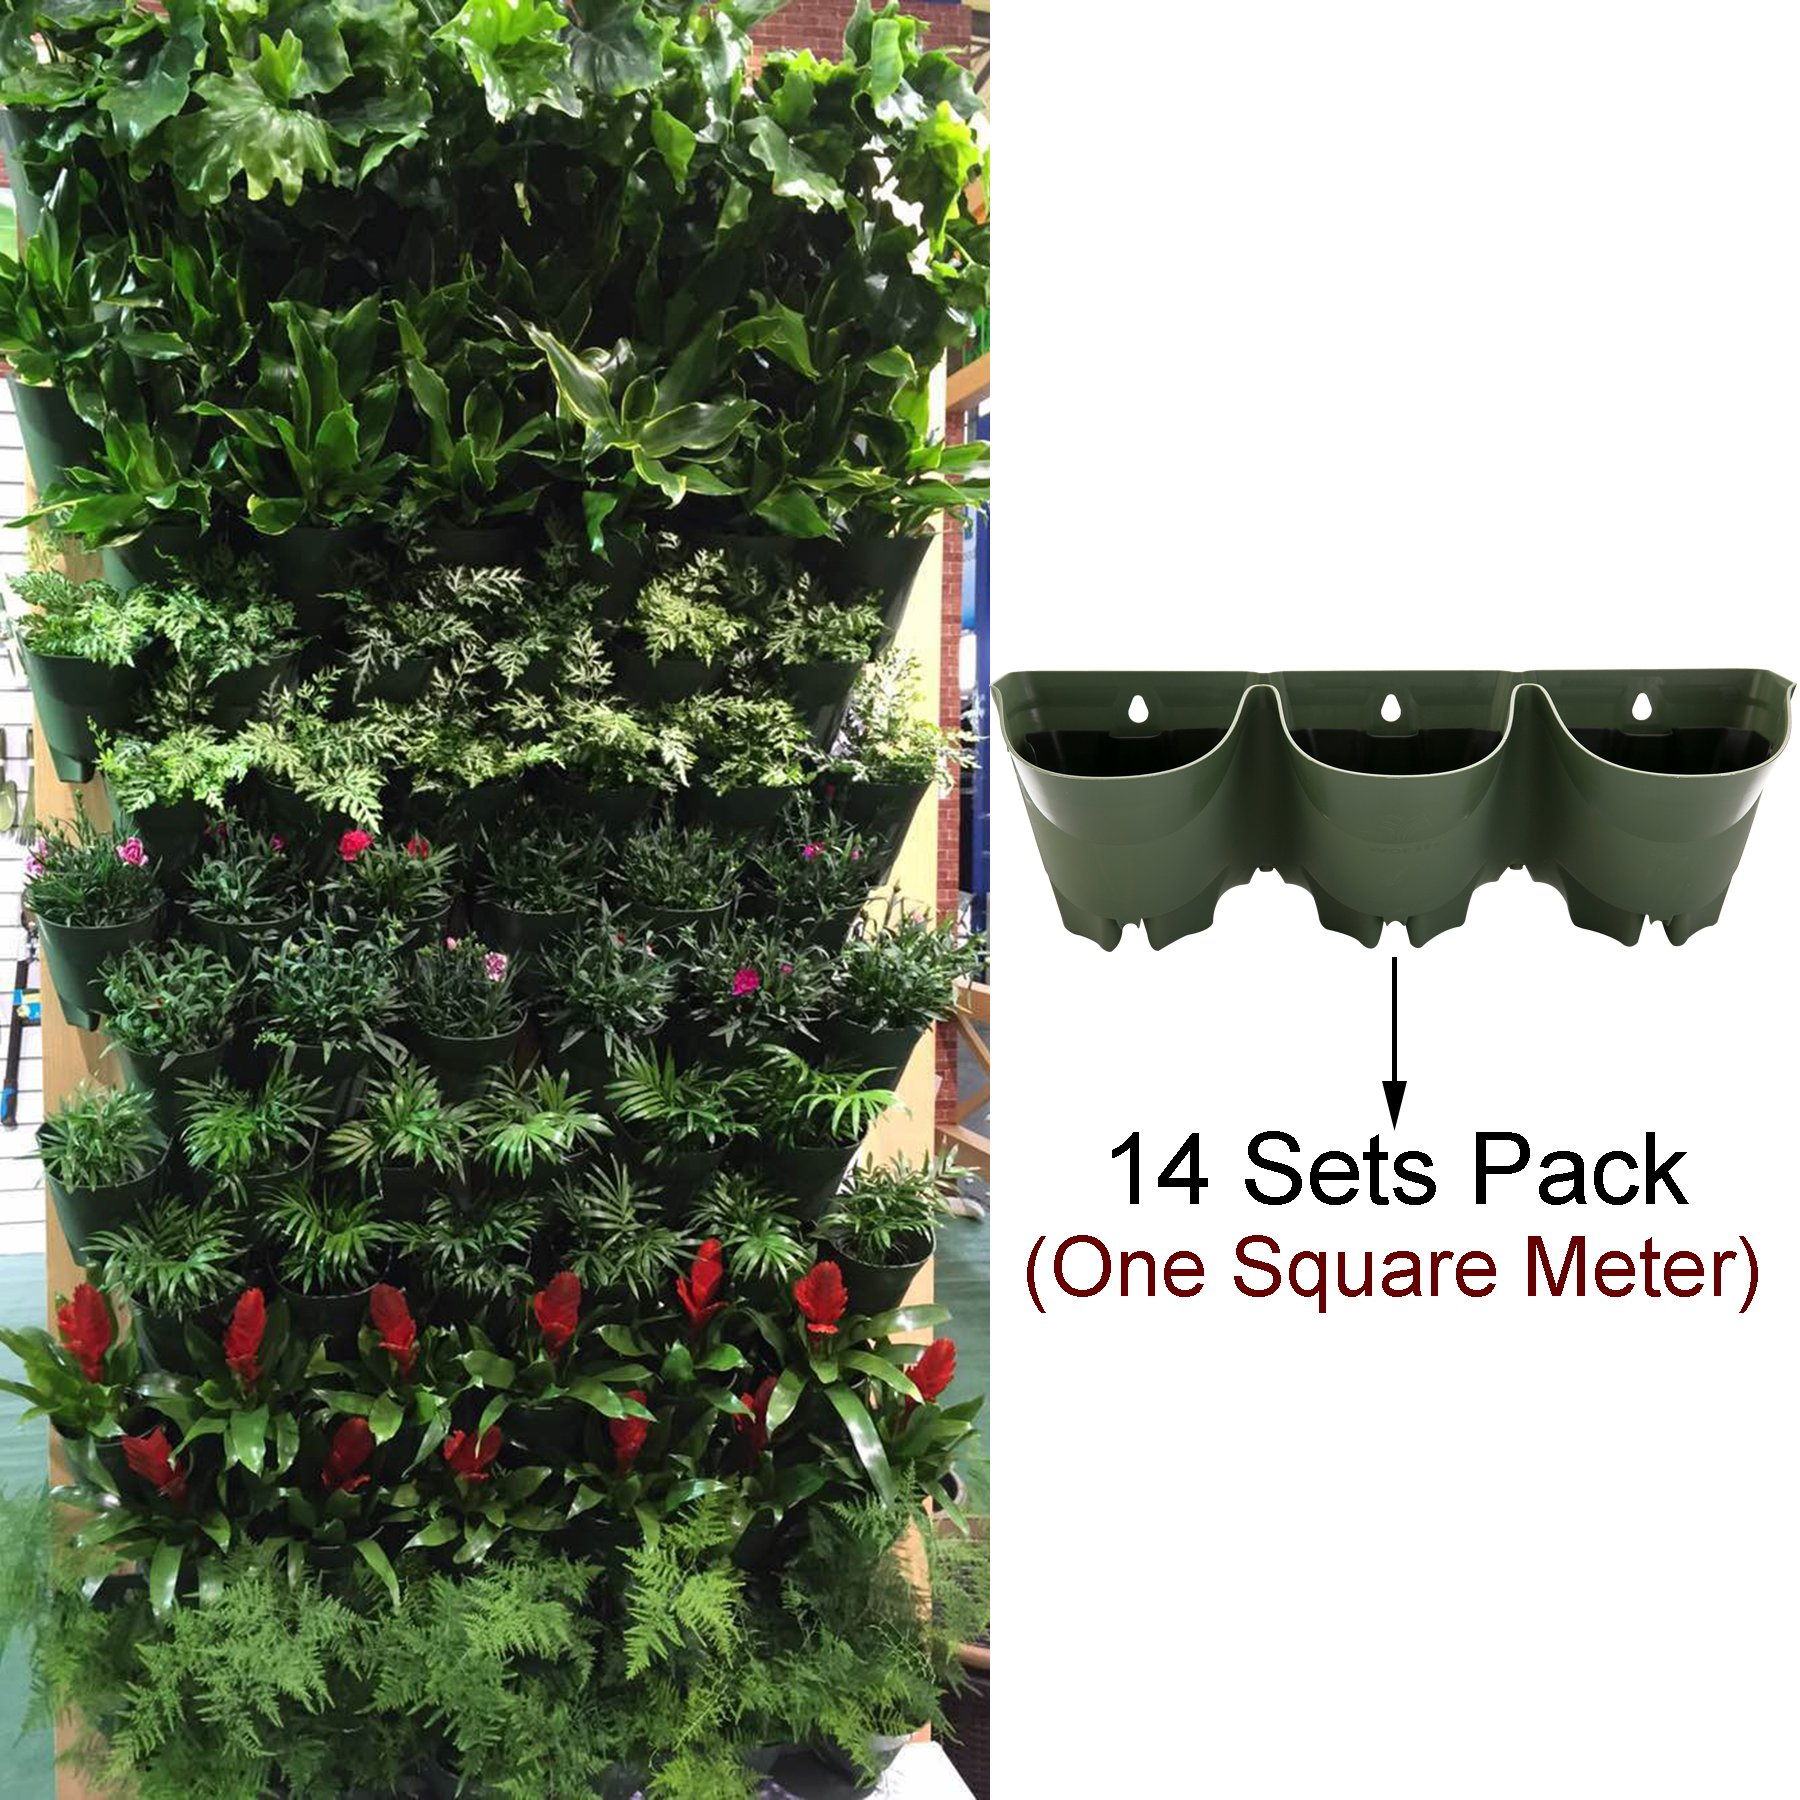 Sungmor 1 Square Meter Erea Vertical Hanging Living Wall Planter,Worth Gardening 3 Pocket with 3 Liner Self Watering Flower Pot,Indoor and Outdoor Decoration(14 Sets Pack)